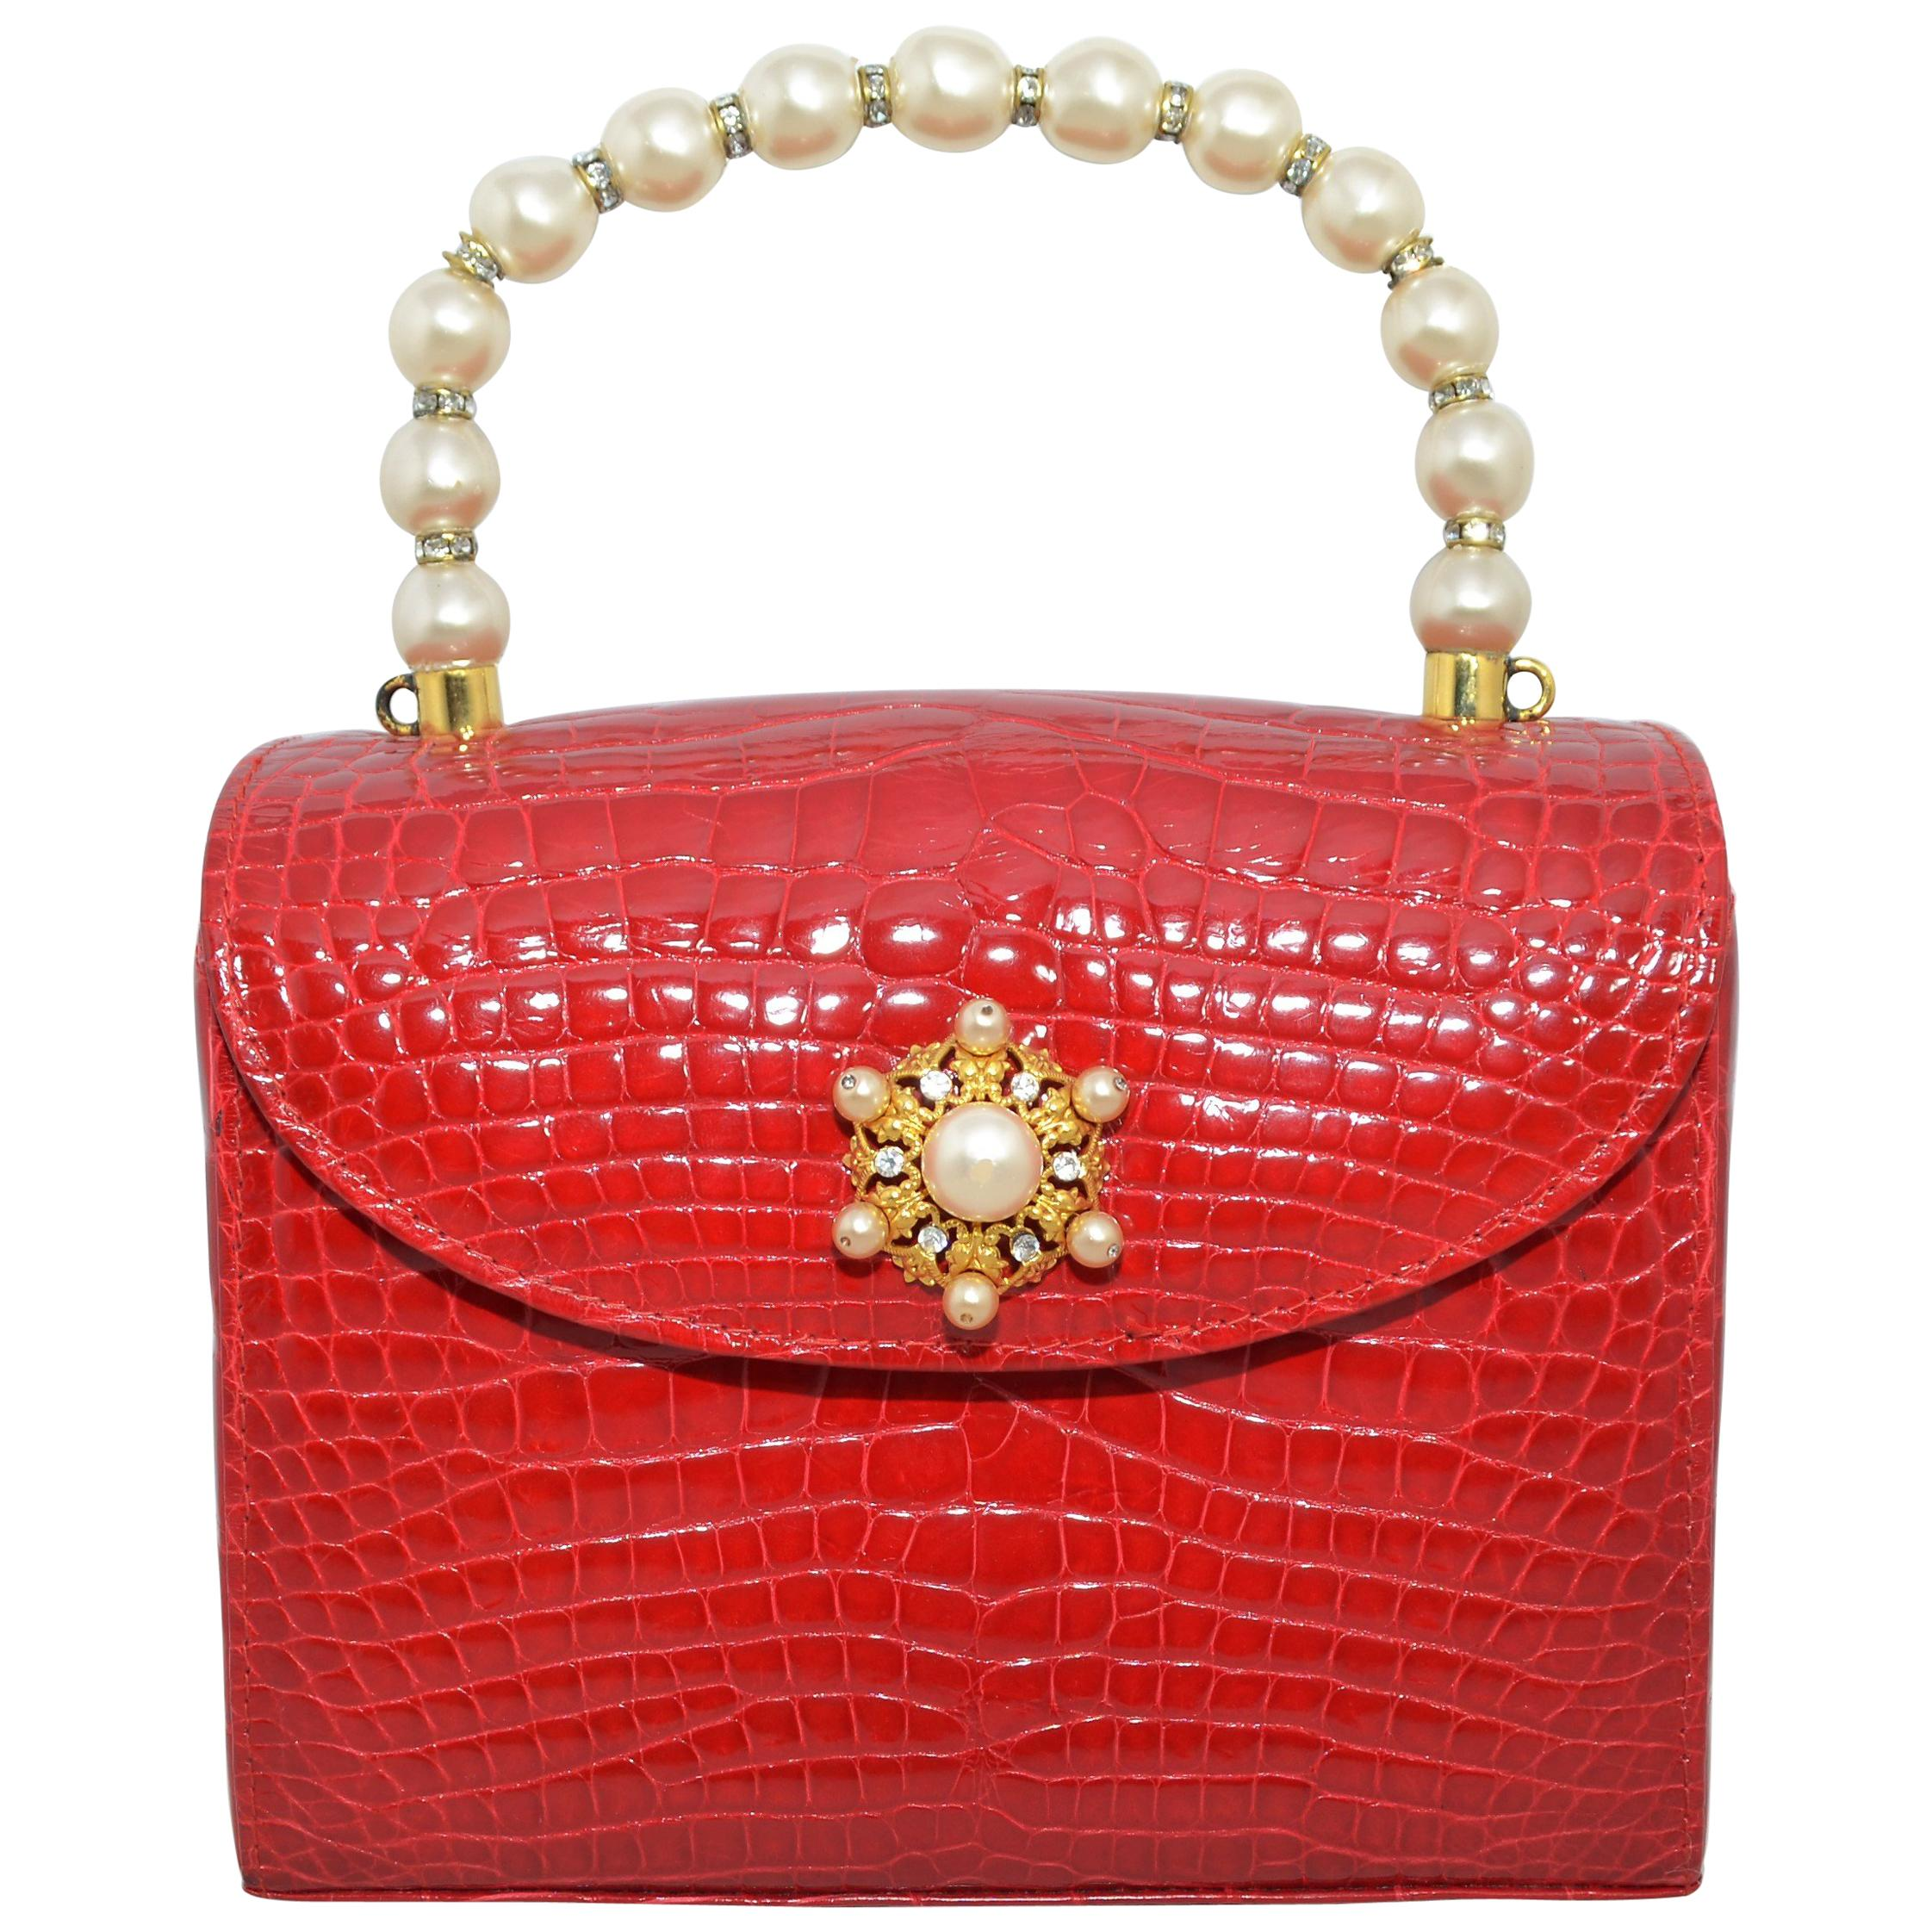 Lana Marks Red Alligator Purse with Pearl Handle